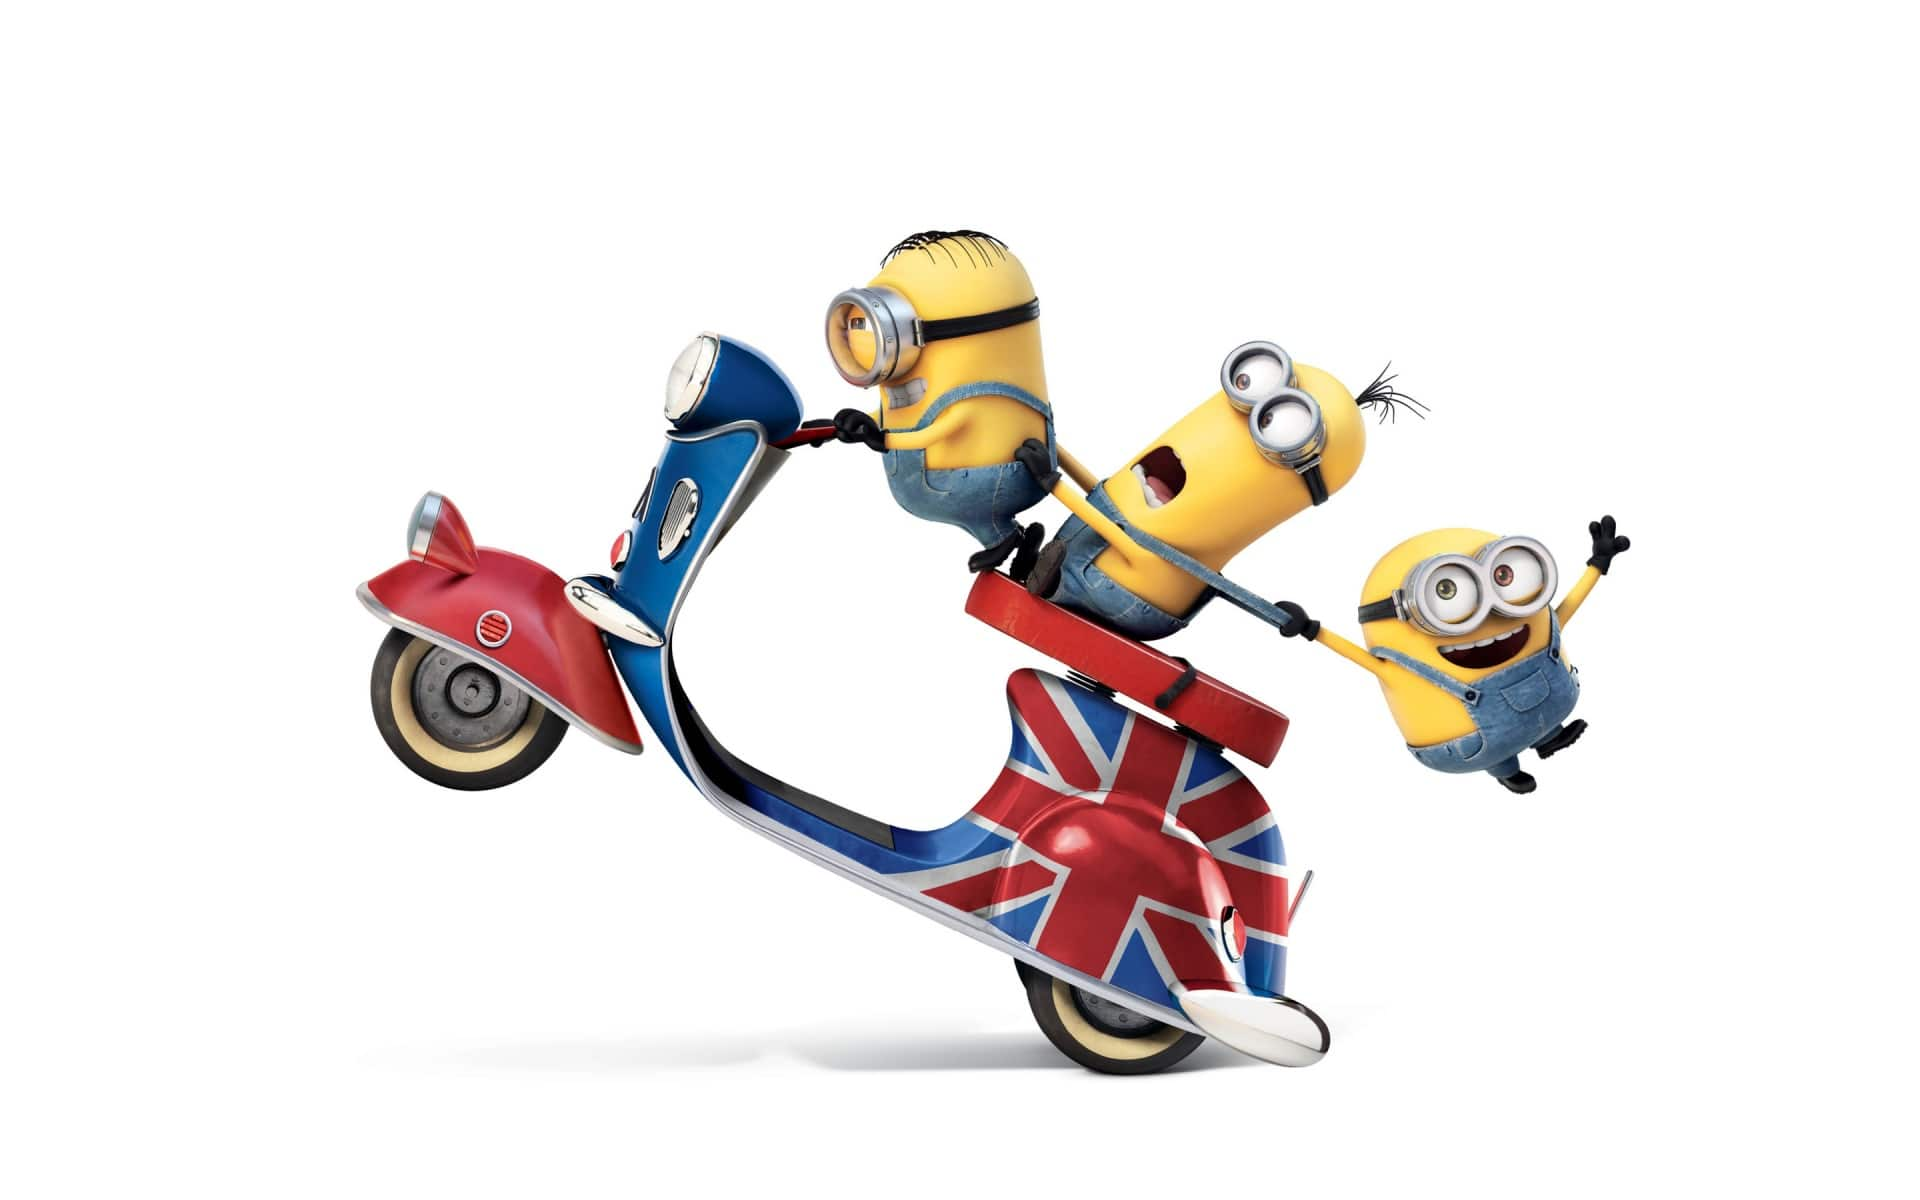 Minions widescreen for desktop